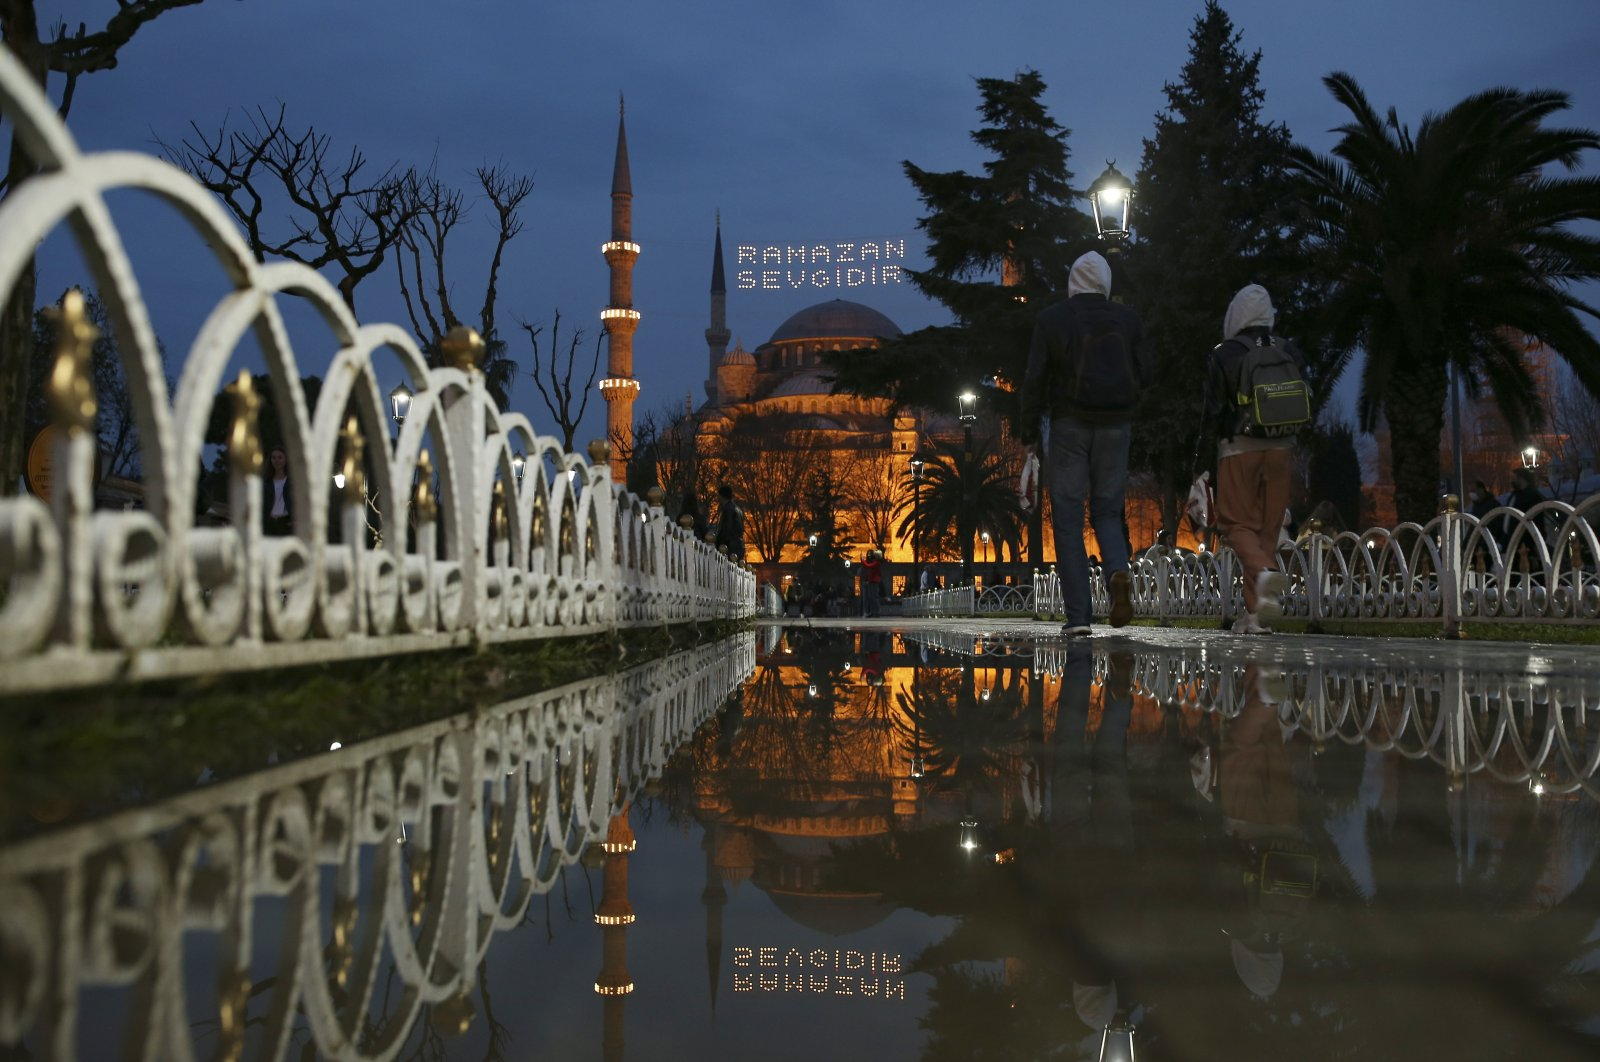 """The iconic Sultan Ahmet Mosque, better known as the Blue Mosque, decorated with lights and a slogan reading """"Ramadan is love,"""" in the historic Sultan Ahmet district of Istanbul, Turkey, Tuesday, April 13, 2021. (AP Photo)"""